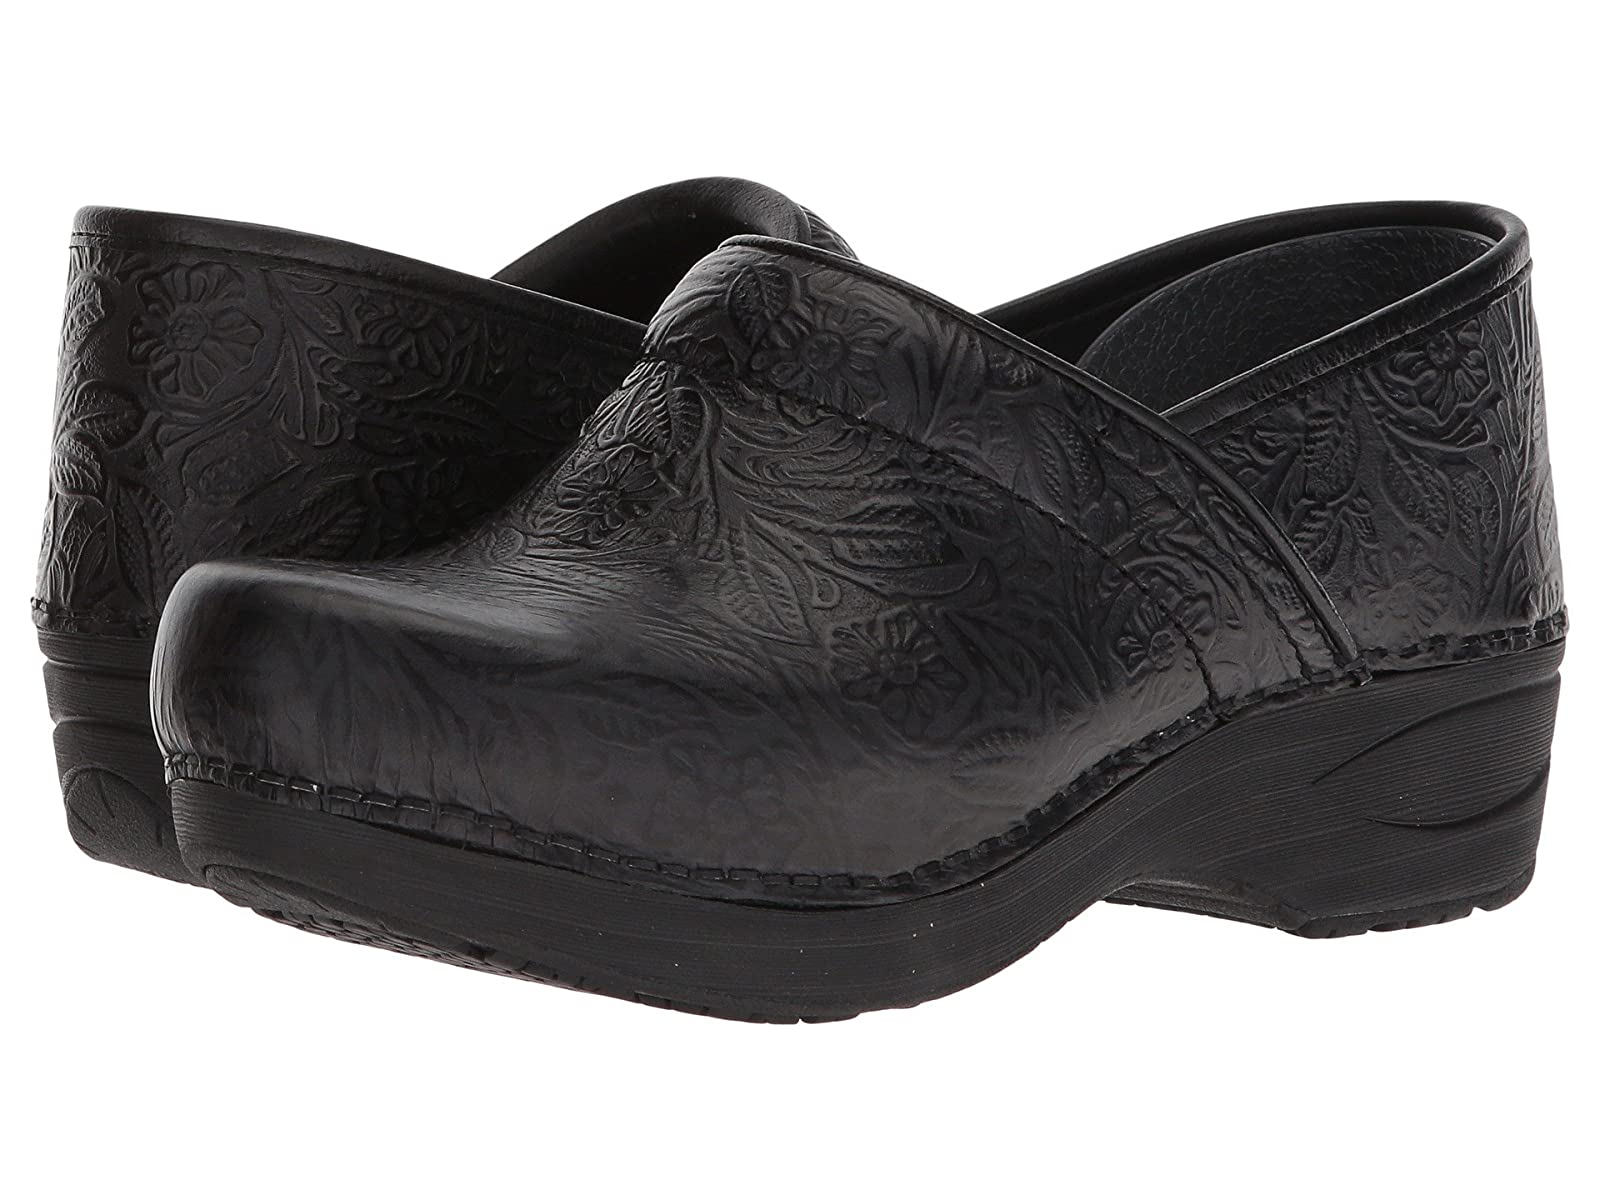 Dansko XP 2.0Economical and quality shoes